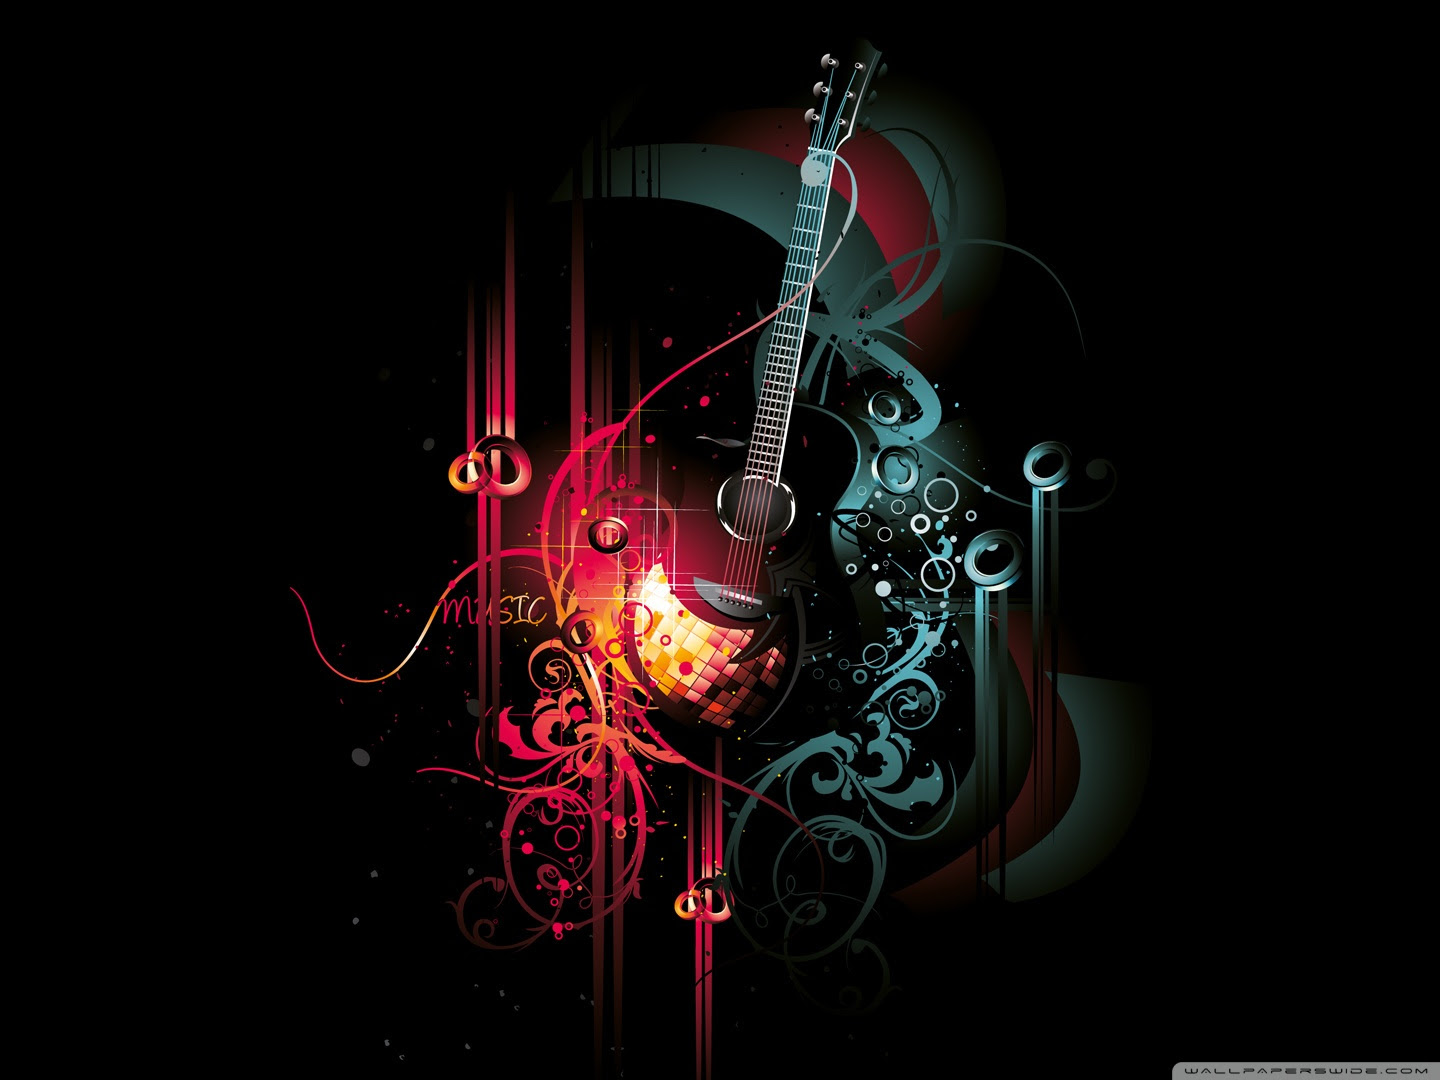 Wallpaper Music Download Wallpapers Style